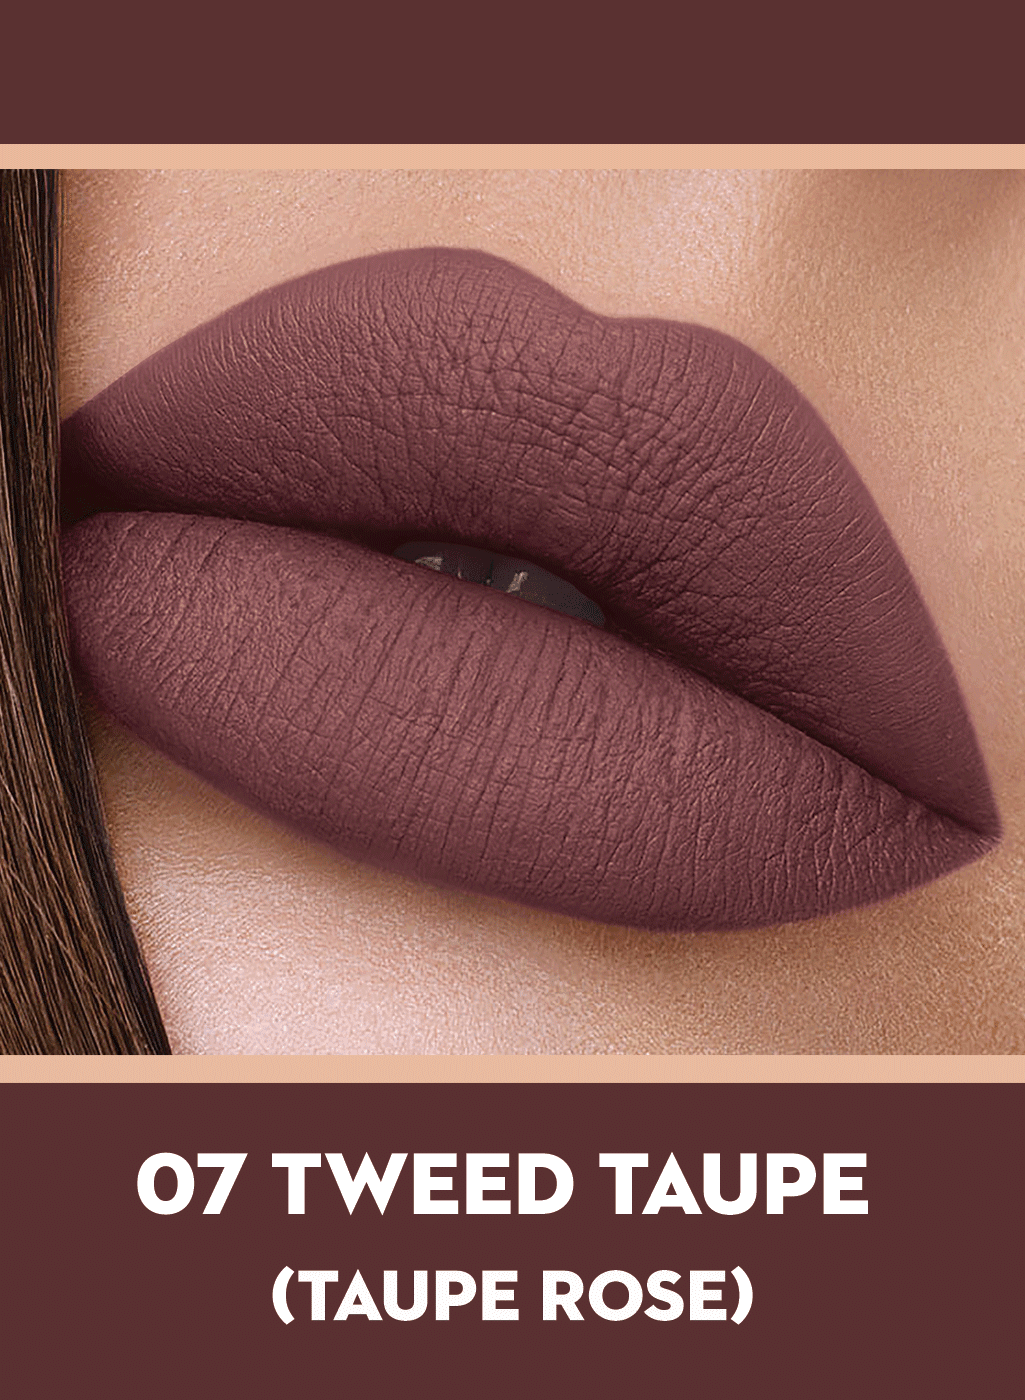 SUGAR Suede Secret Matte Lipcolour